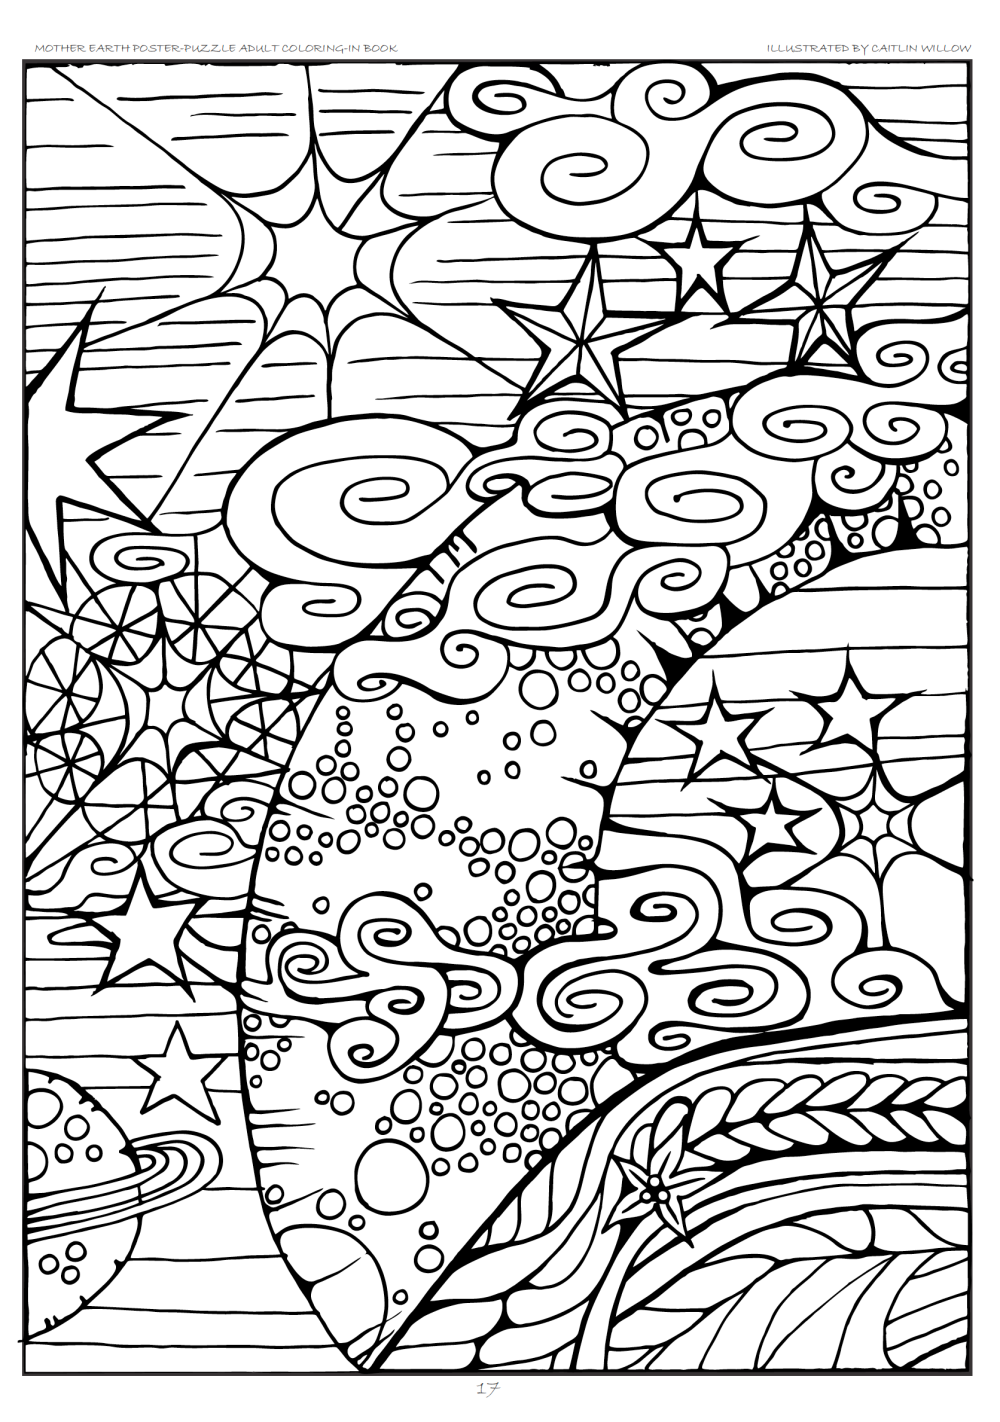 mother nature coloring pages | Mother Earth Poster Puzzle Adult Coloring In Book – Adult ...